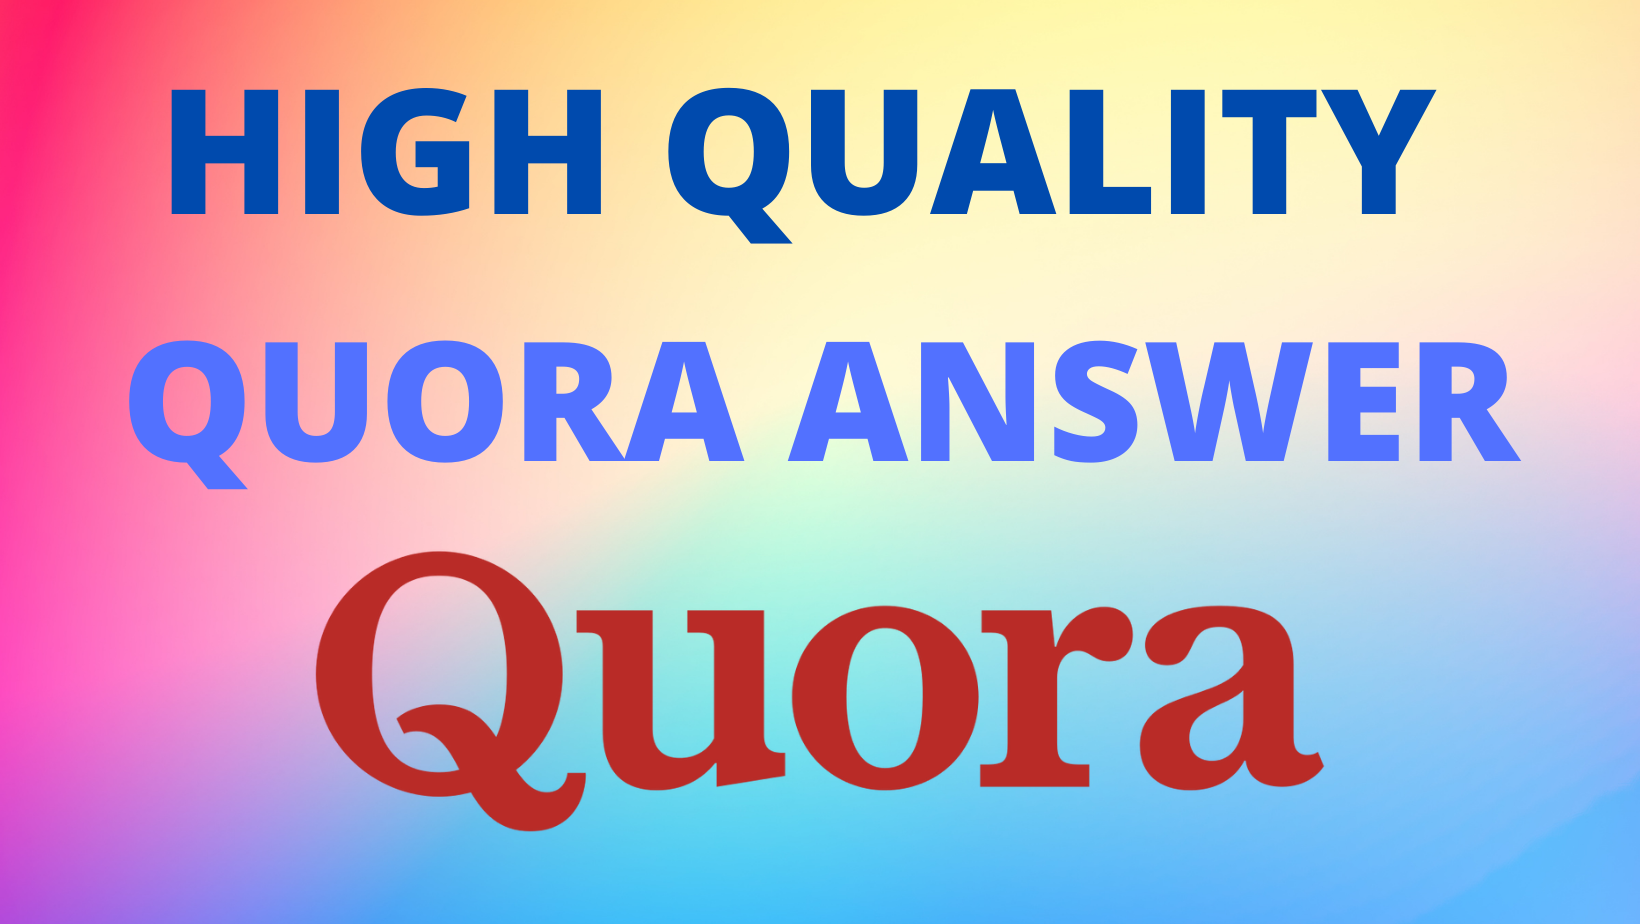 We will provide 10 HQ Quora Backlinks to get more traffic